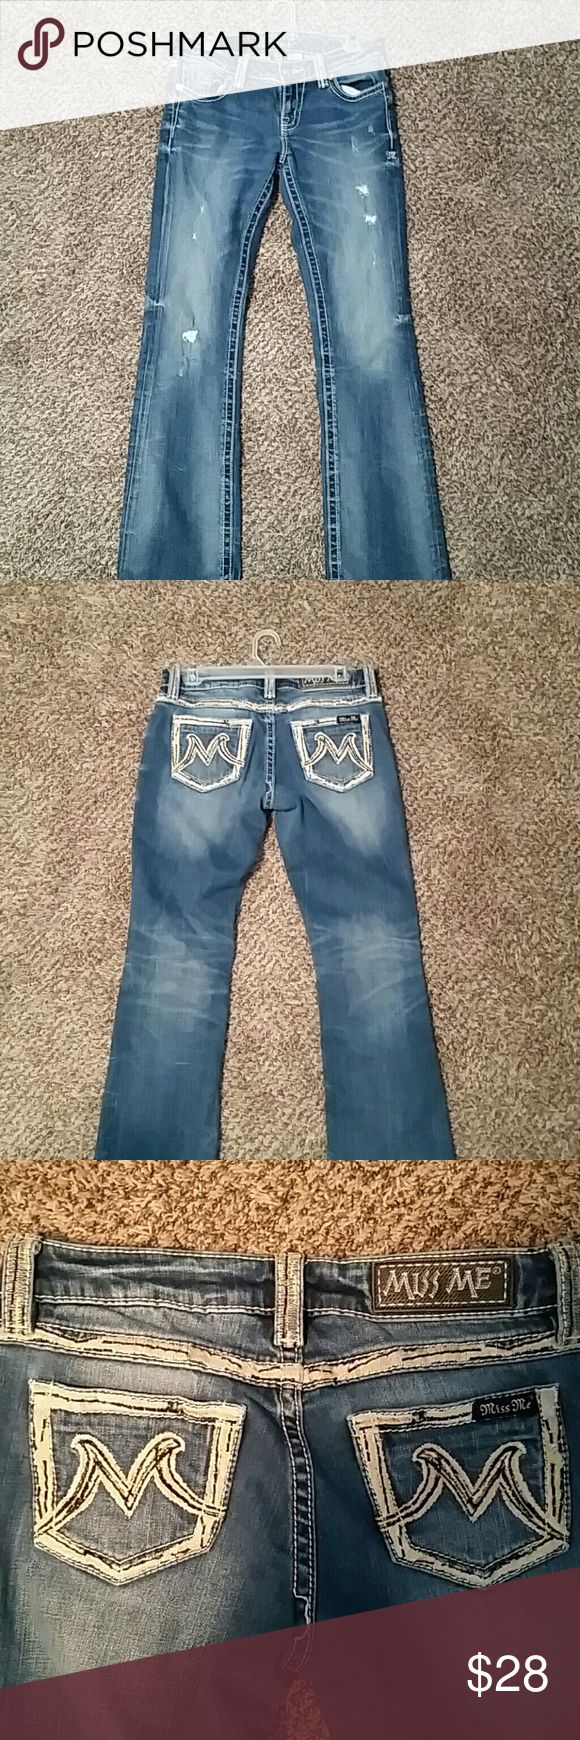 Miss Me jeans the m series Very good condition girl jeans from the Buckle Store Miss Me Jeans Boot Cut